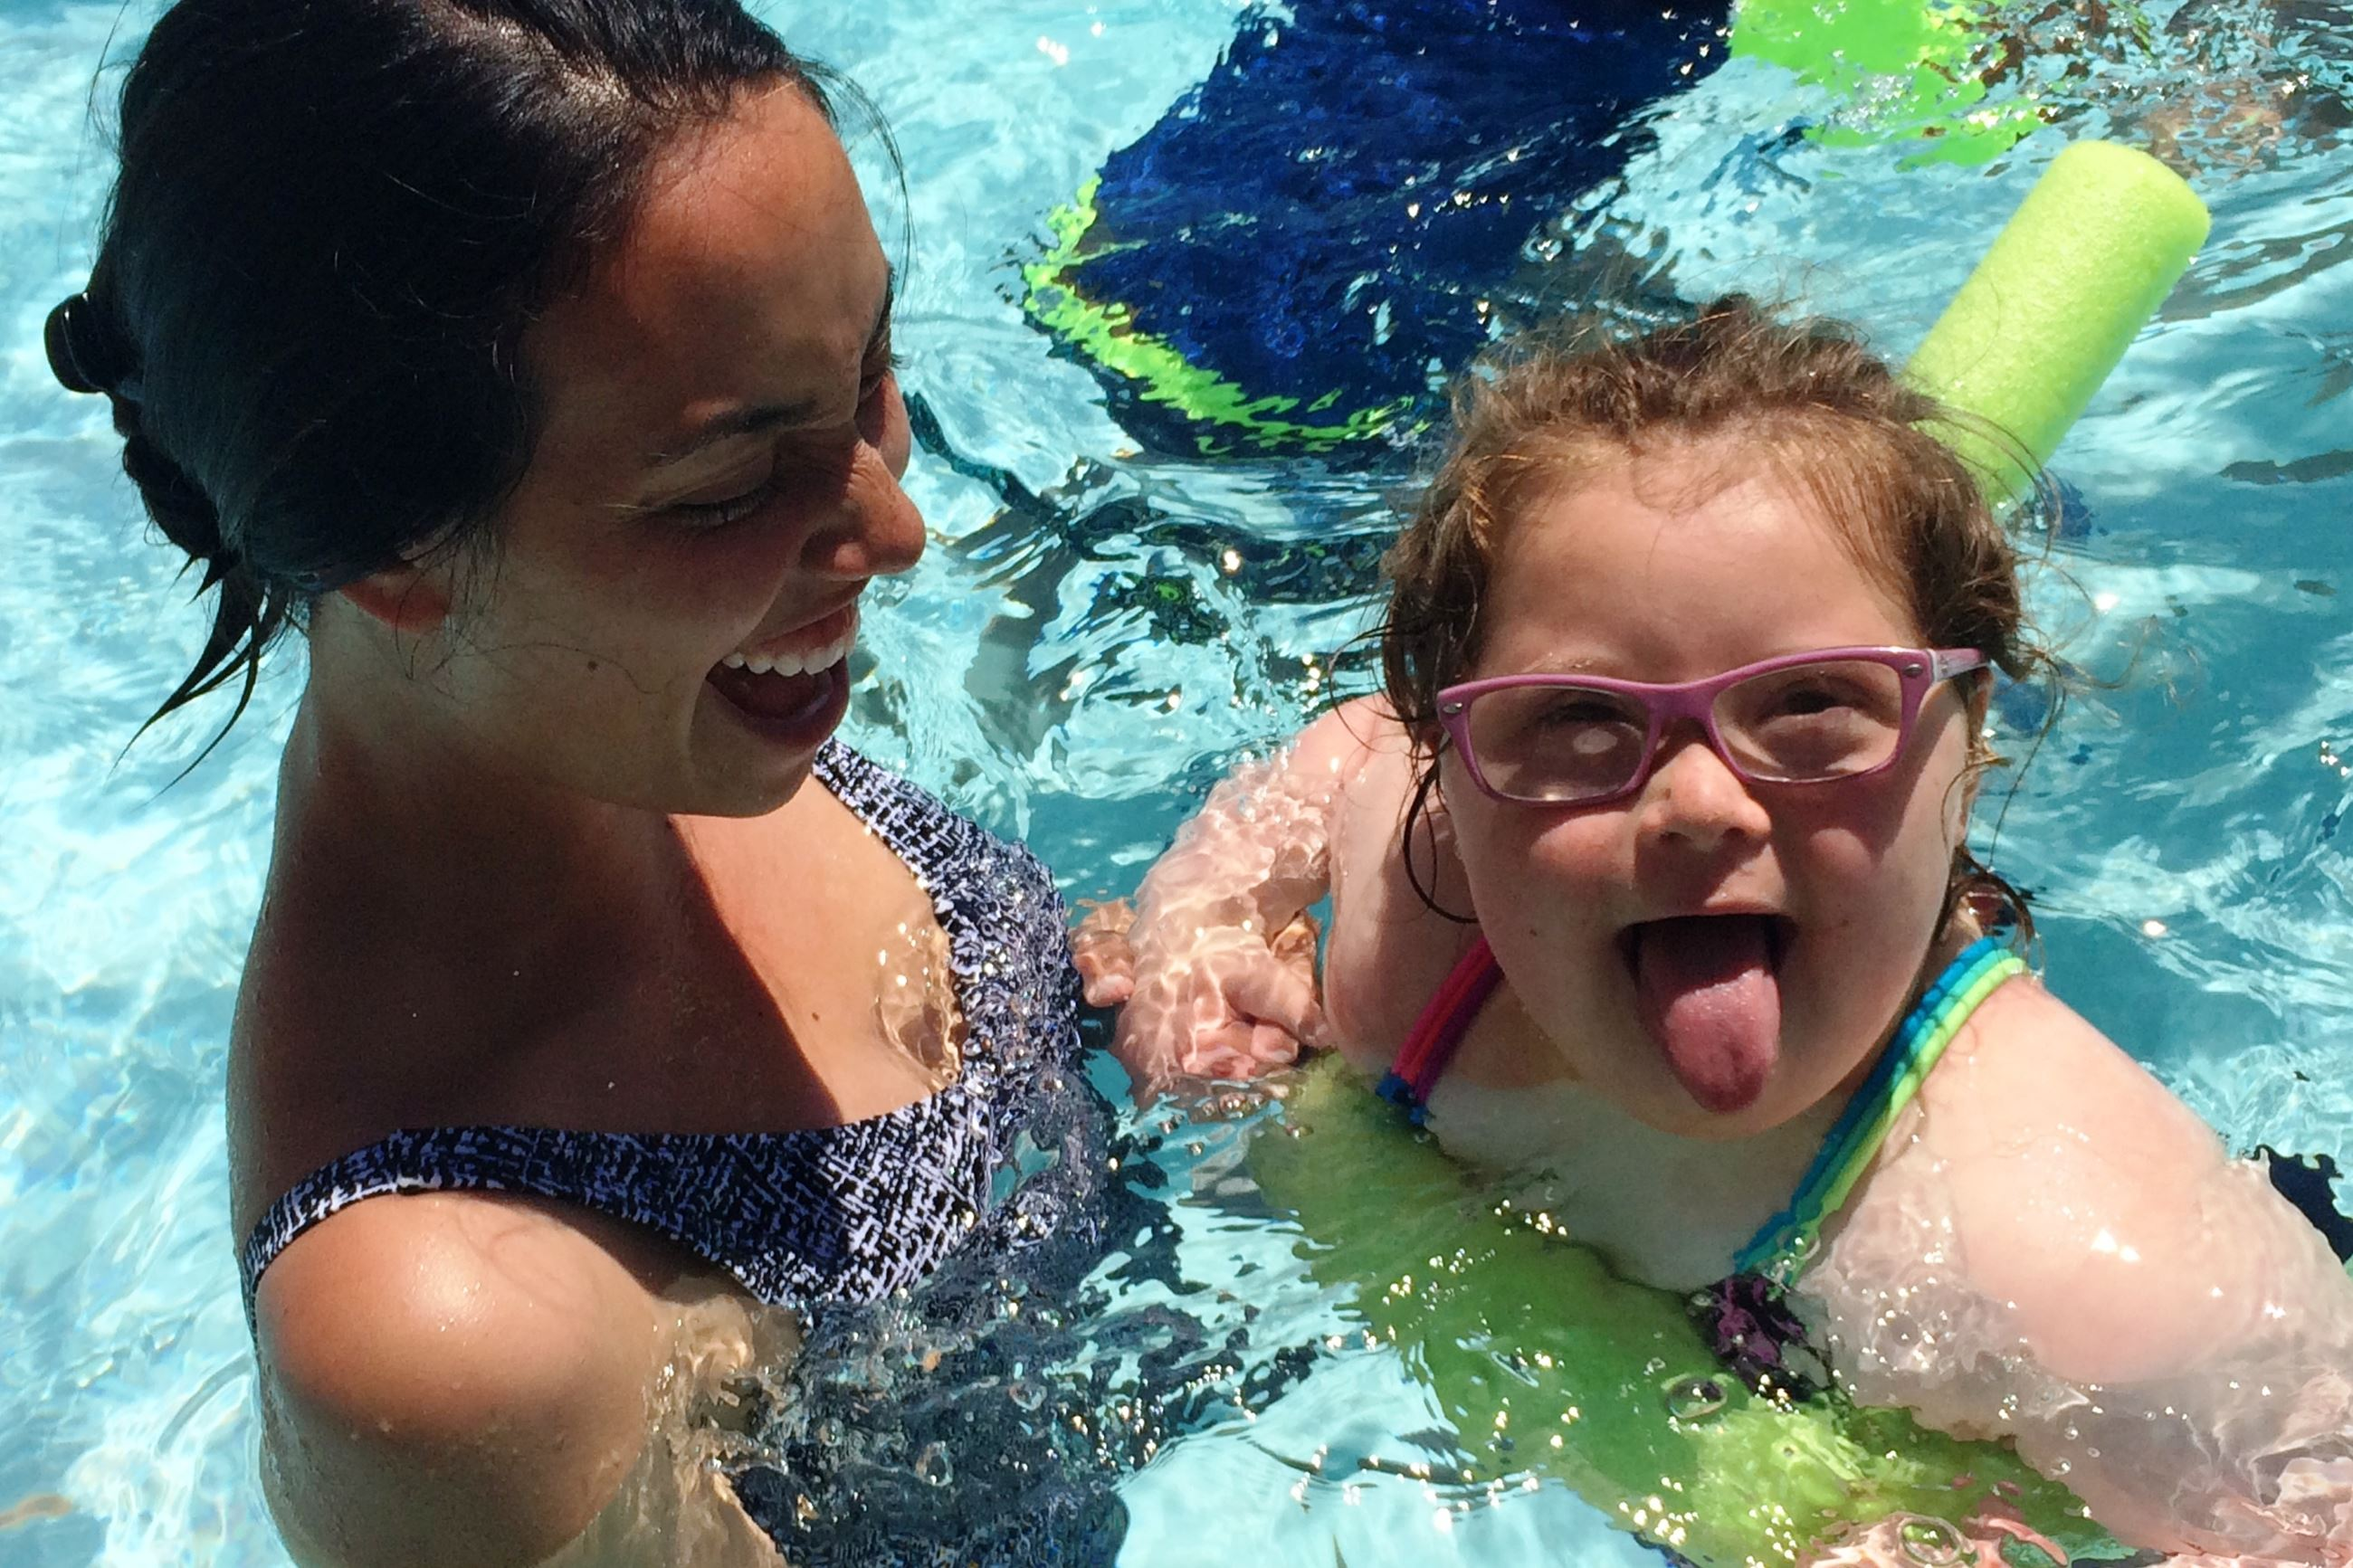 girl in pool smiling with staff person supporting her